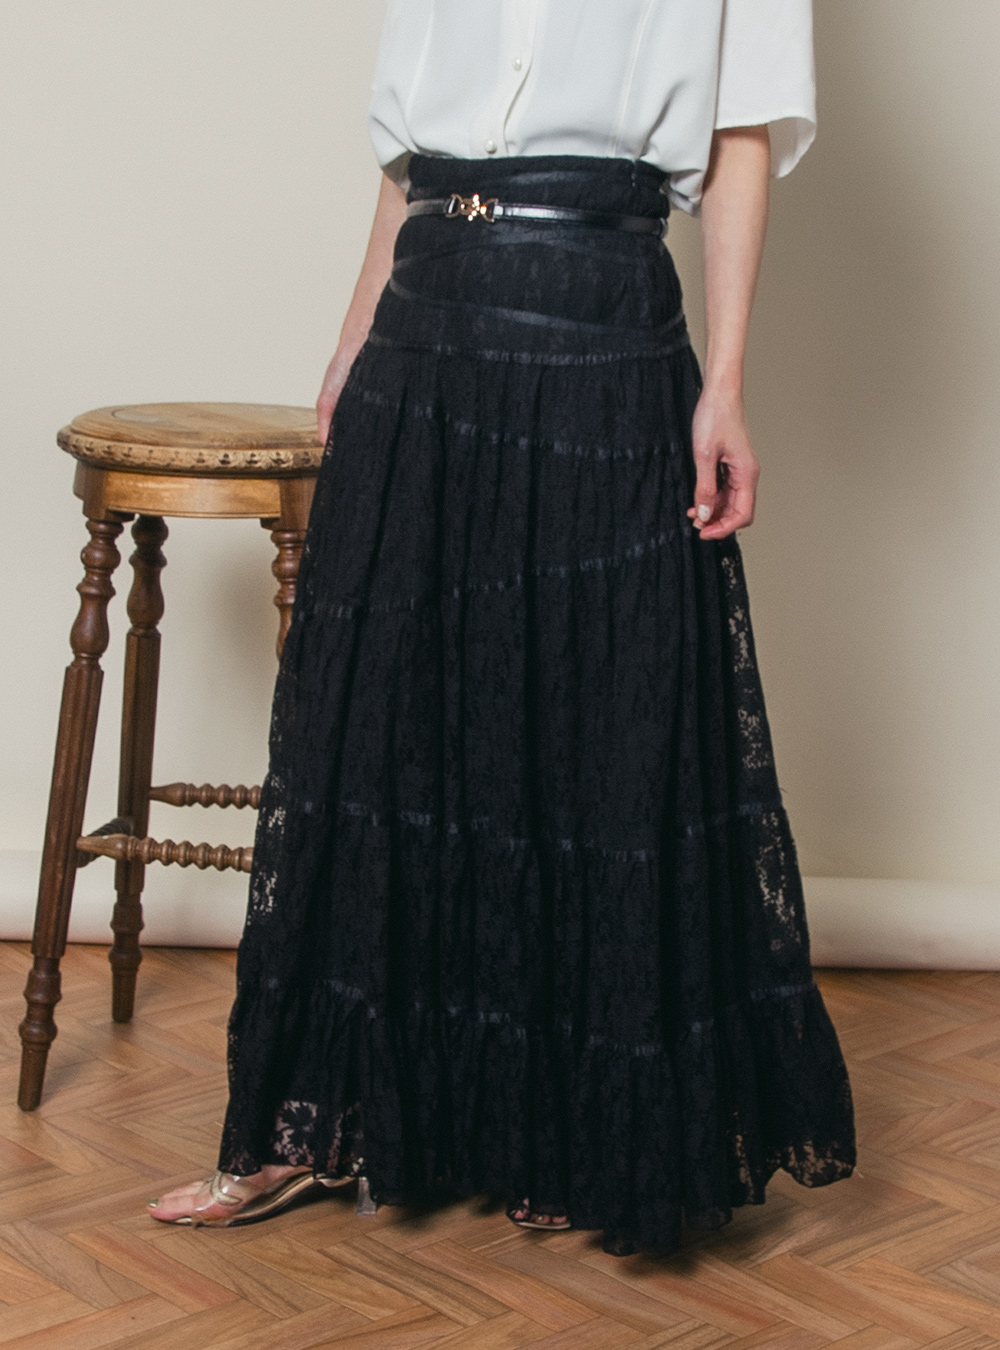 EURO Black Total Lace Flare Skirt